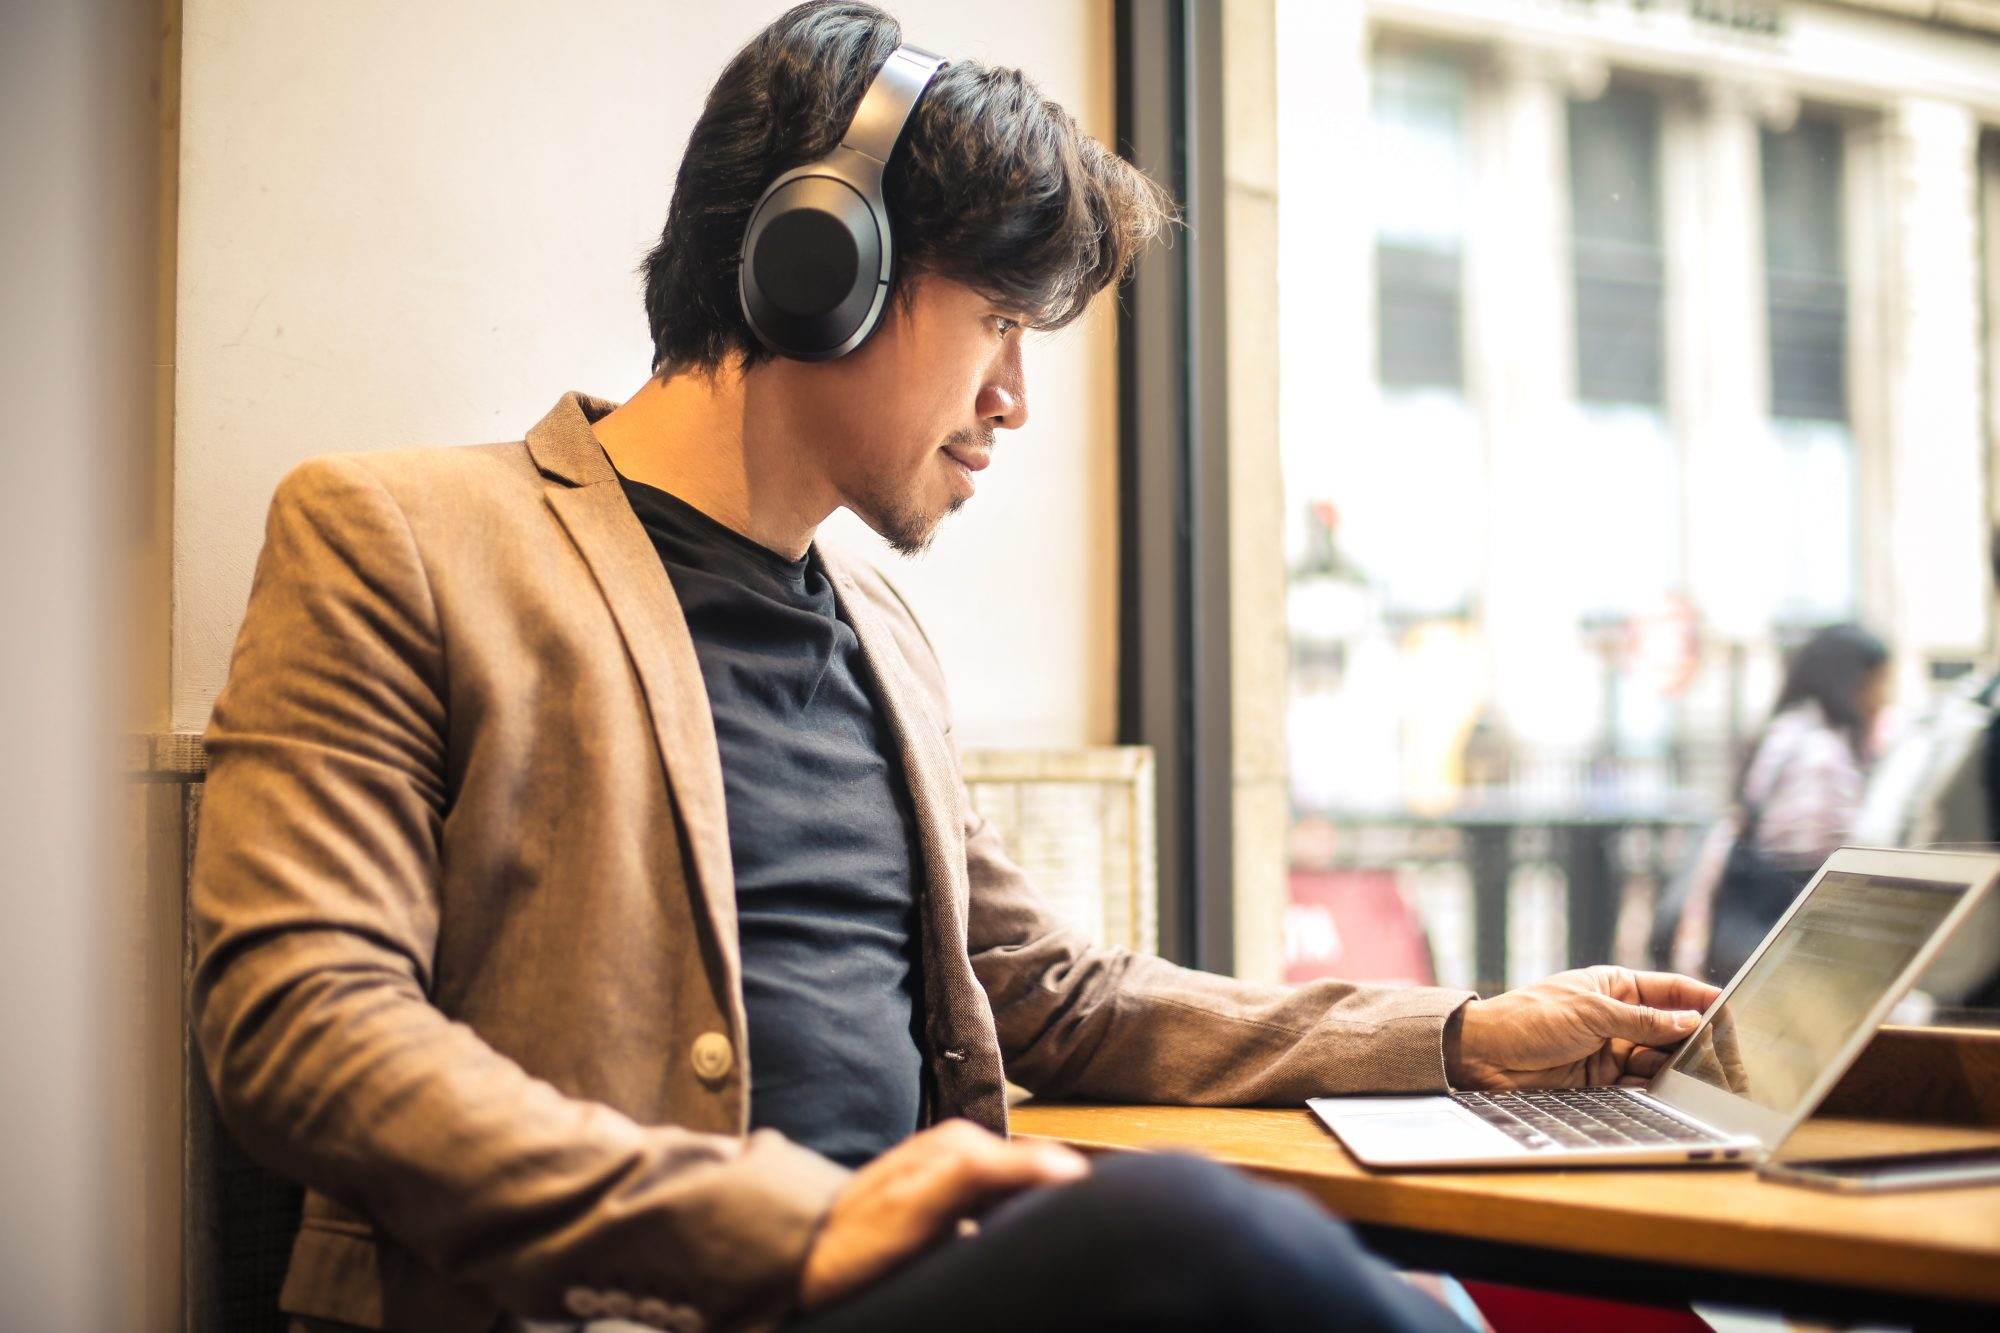 Guy working with his laptop, listening to something